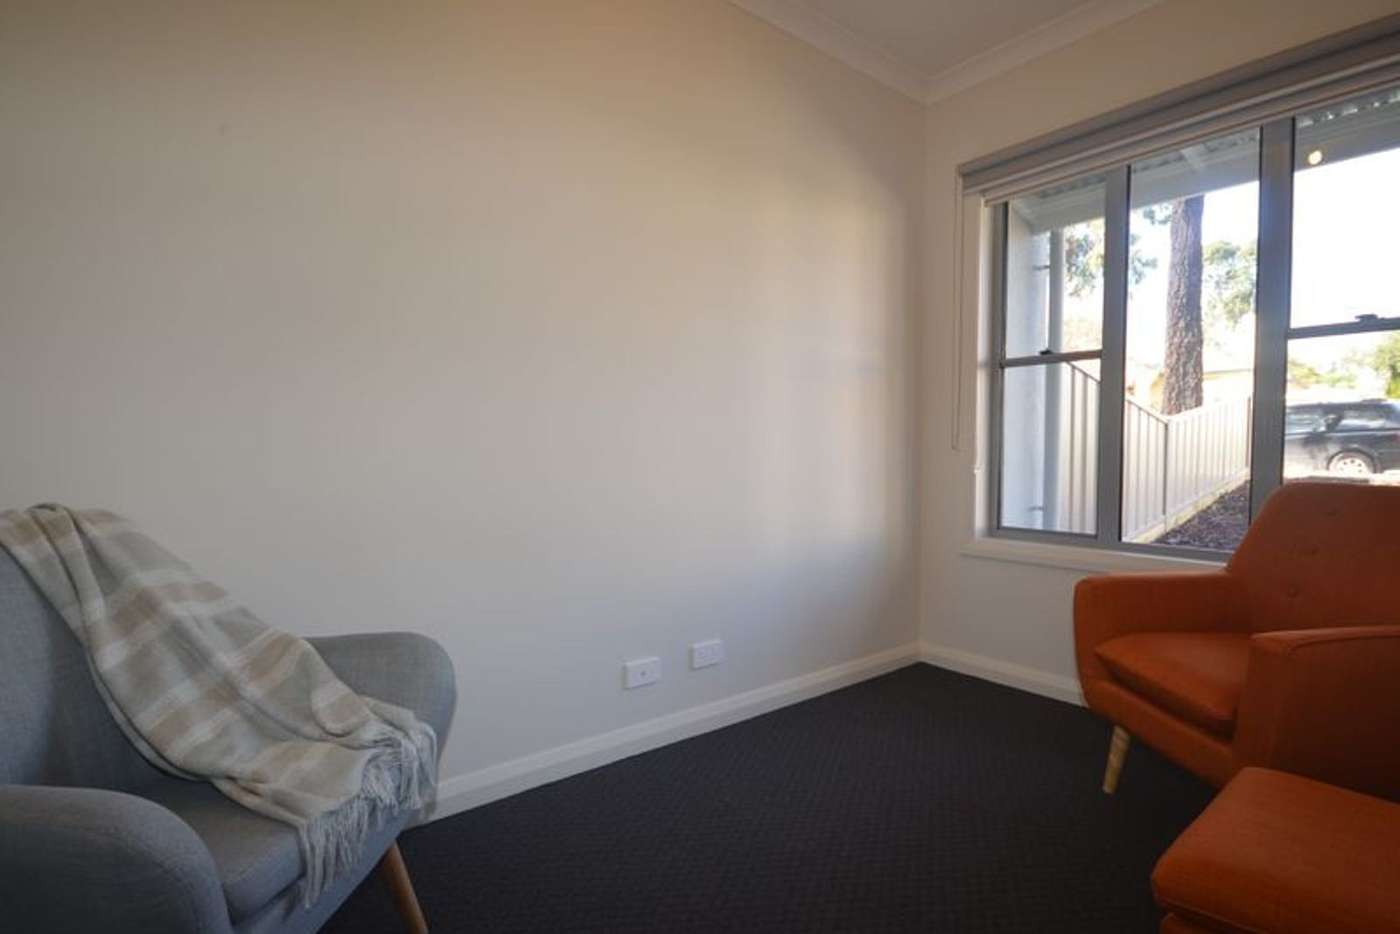 Sixth view of Homely house listing, 21A Smith Street, North Bendigo VIC 3550